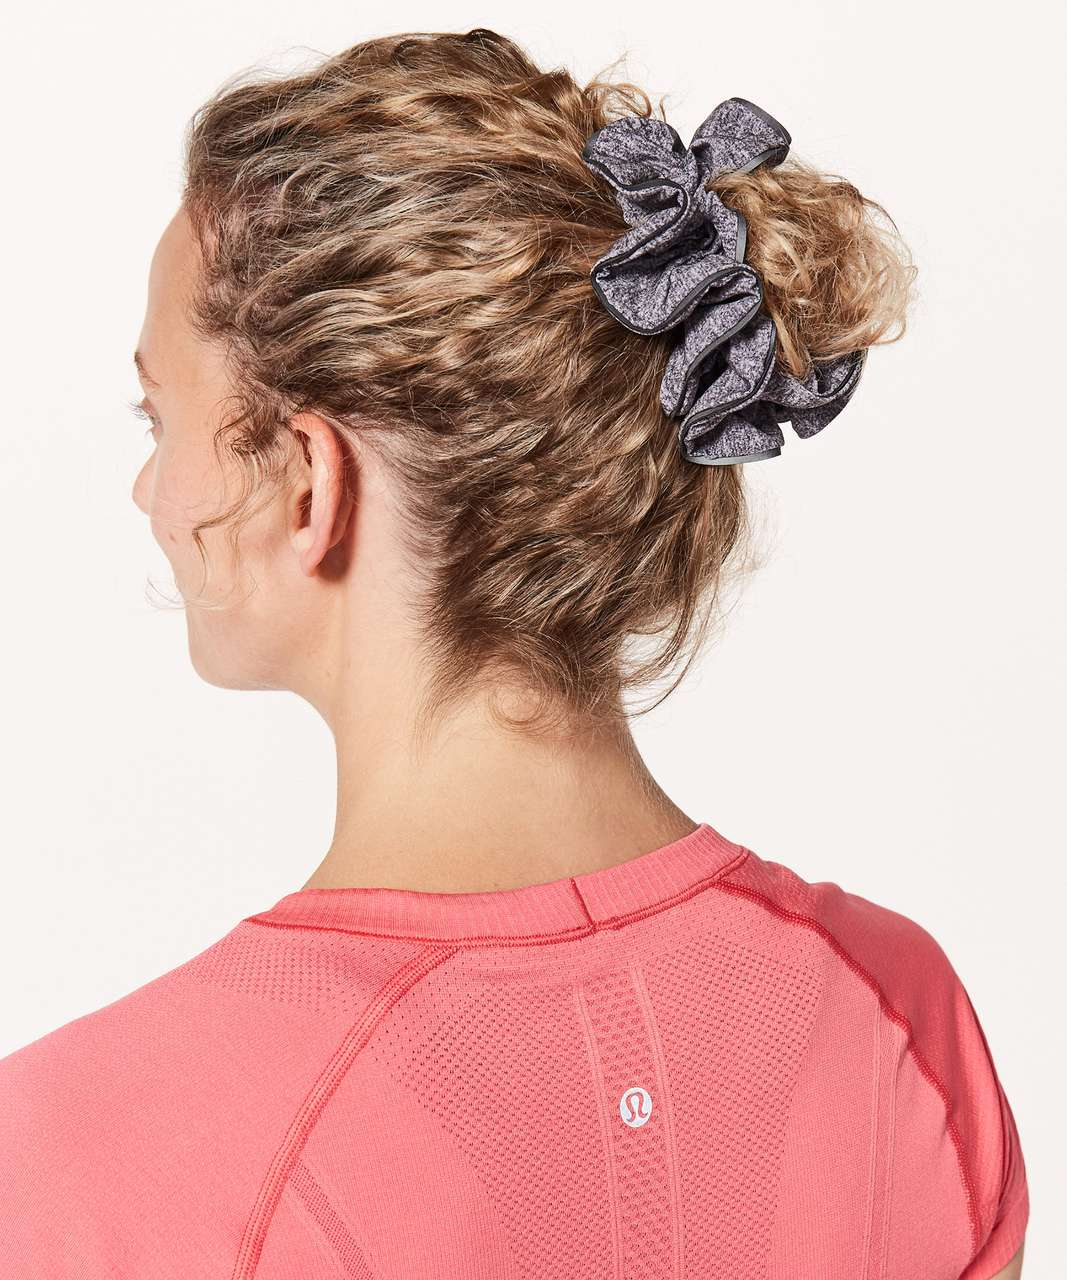 Lululemon Light Locks Scrunchie - Heather Lux Multi Black